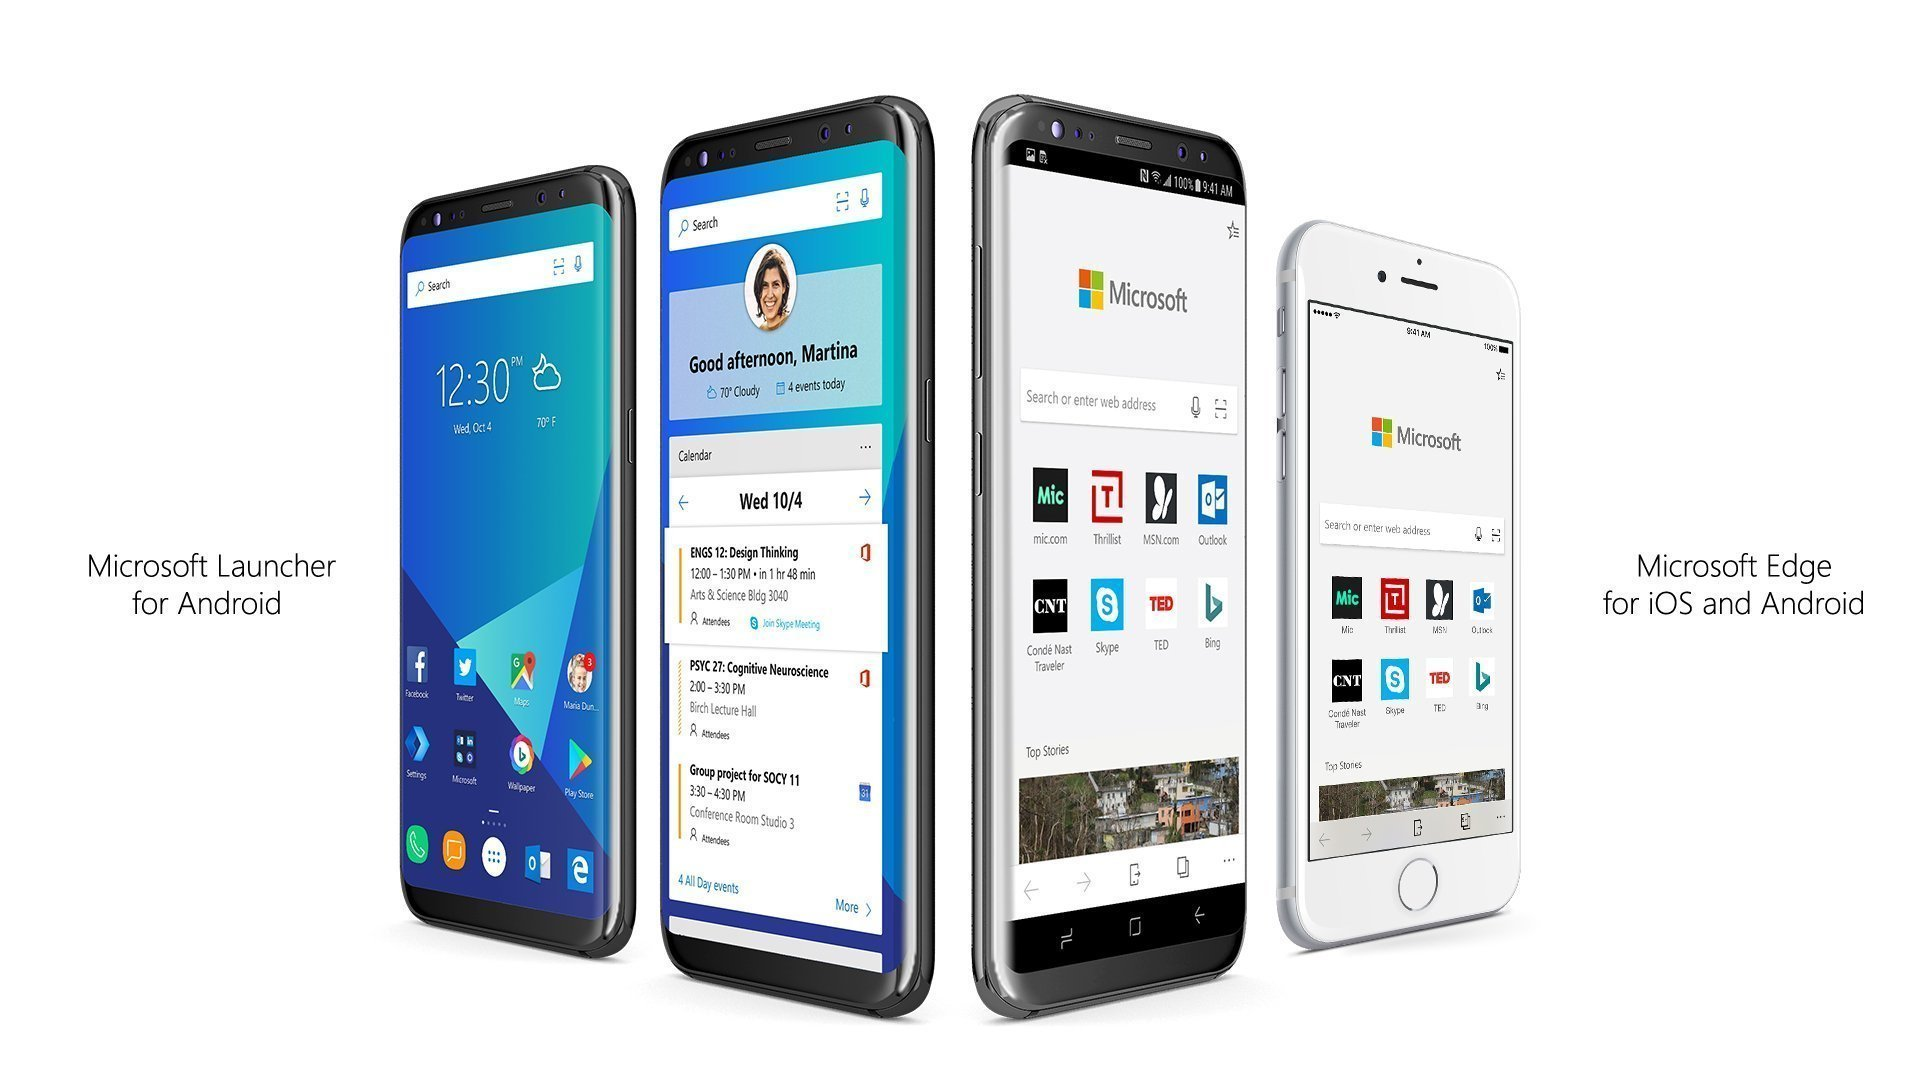 Not sure how to use Microsoft Launcher on Android caaf609f6273fcc3e9545708498dcded.jpg